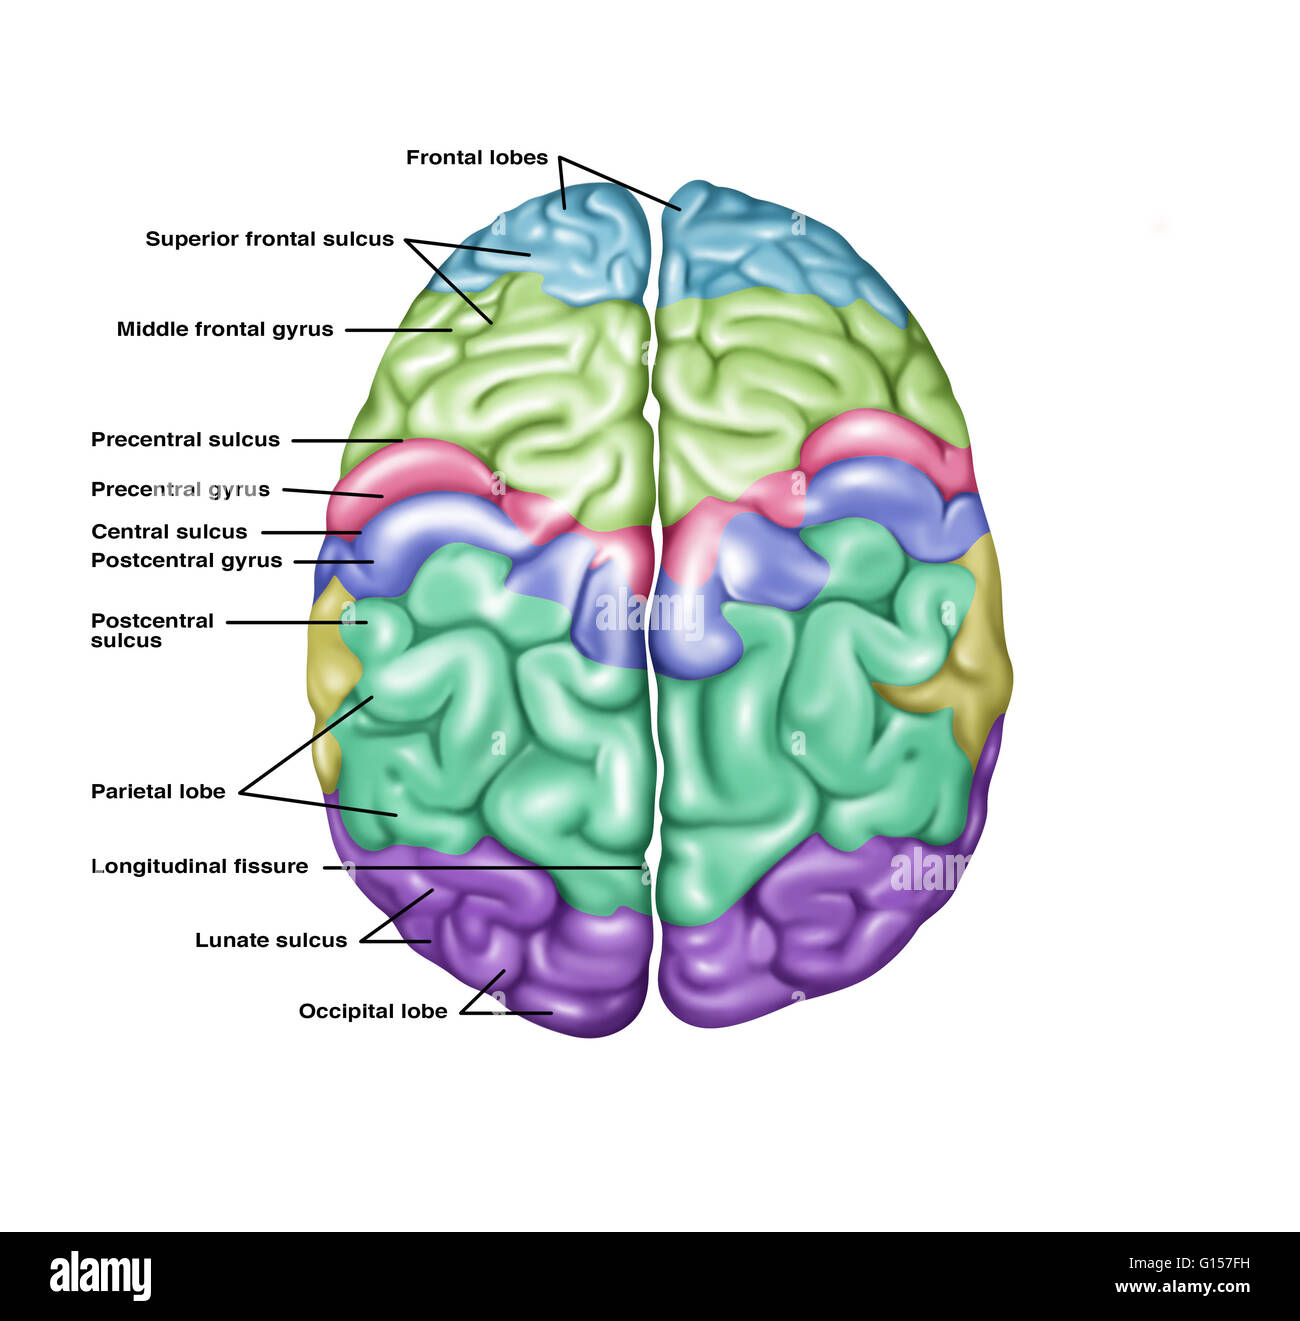 sheep brain superior view diagram wiring for air conditioner thermostat illustration showing anatomy of a normal in